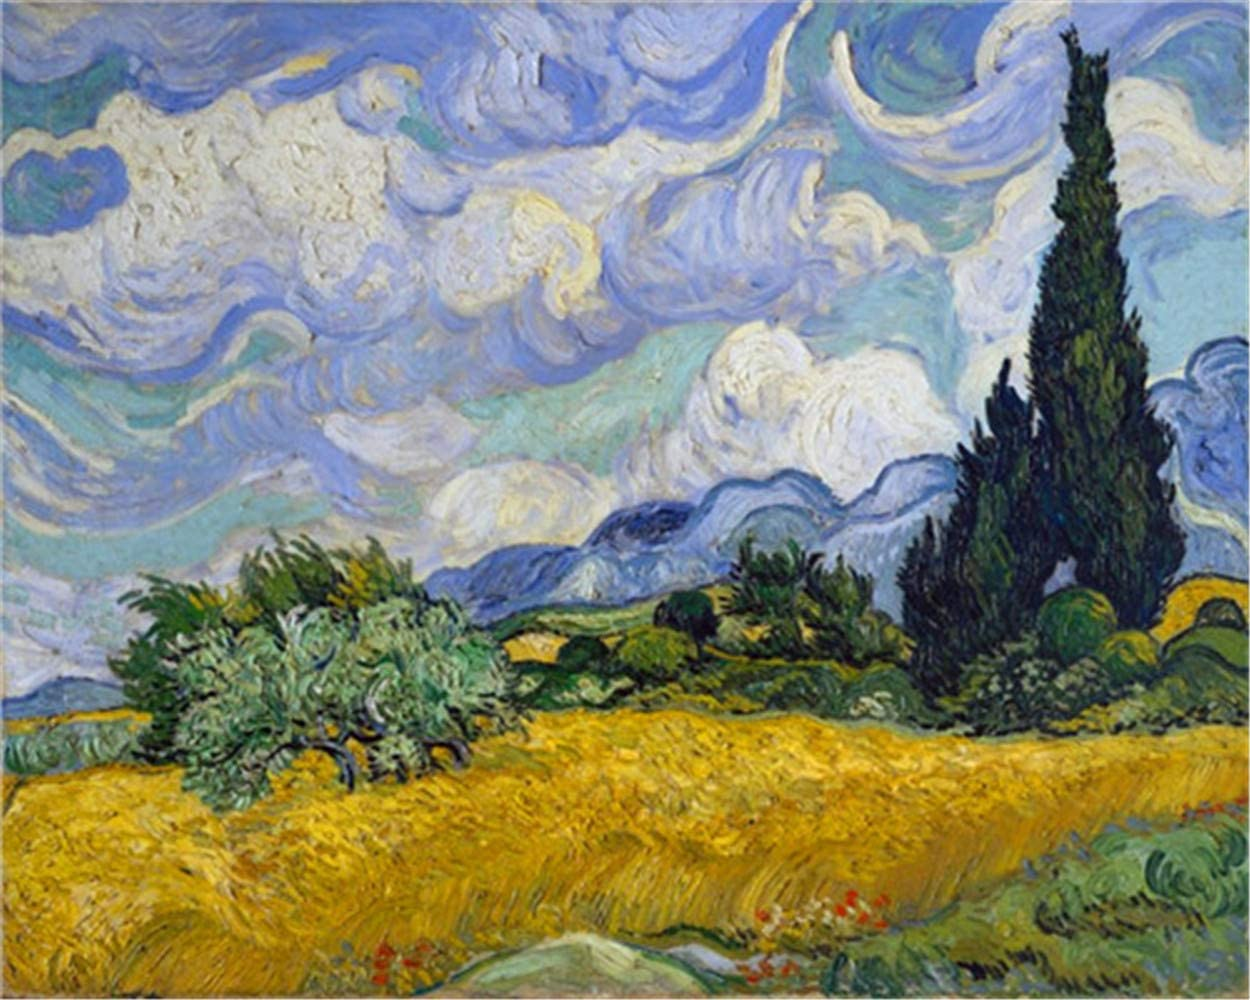 YEESAM ART Paint by Numbers for Adults Kids, Wheat Field with Cypress by Van Gogh 16x20 Inch Linen Canvas Acrylic DIY Number Painting Kits Wall Art Decor Gifts (Without Frame)